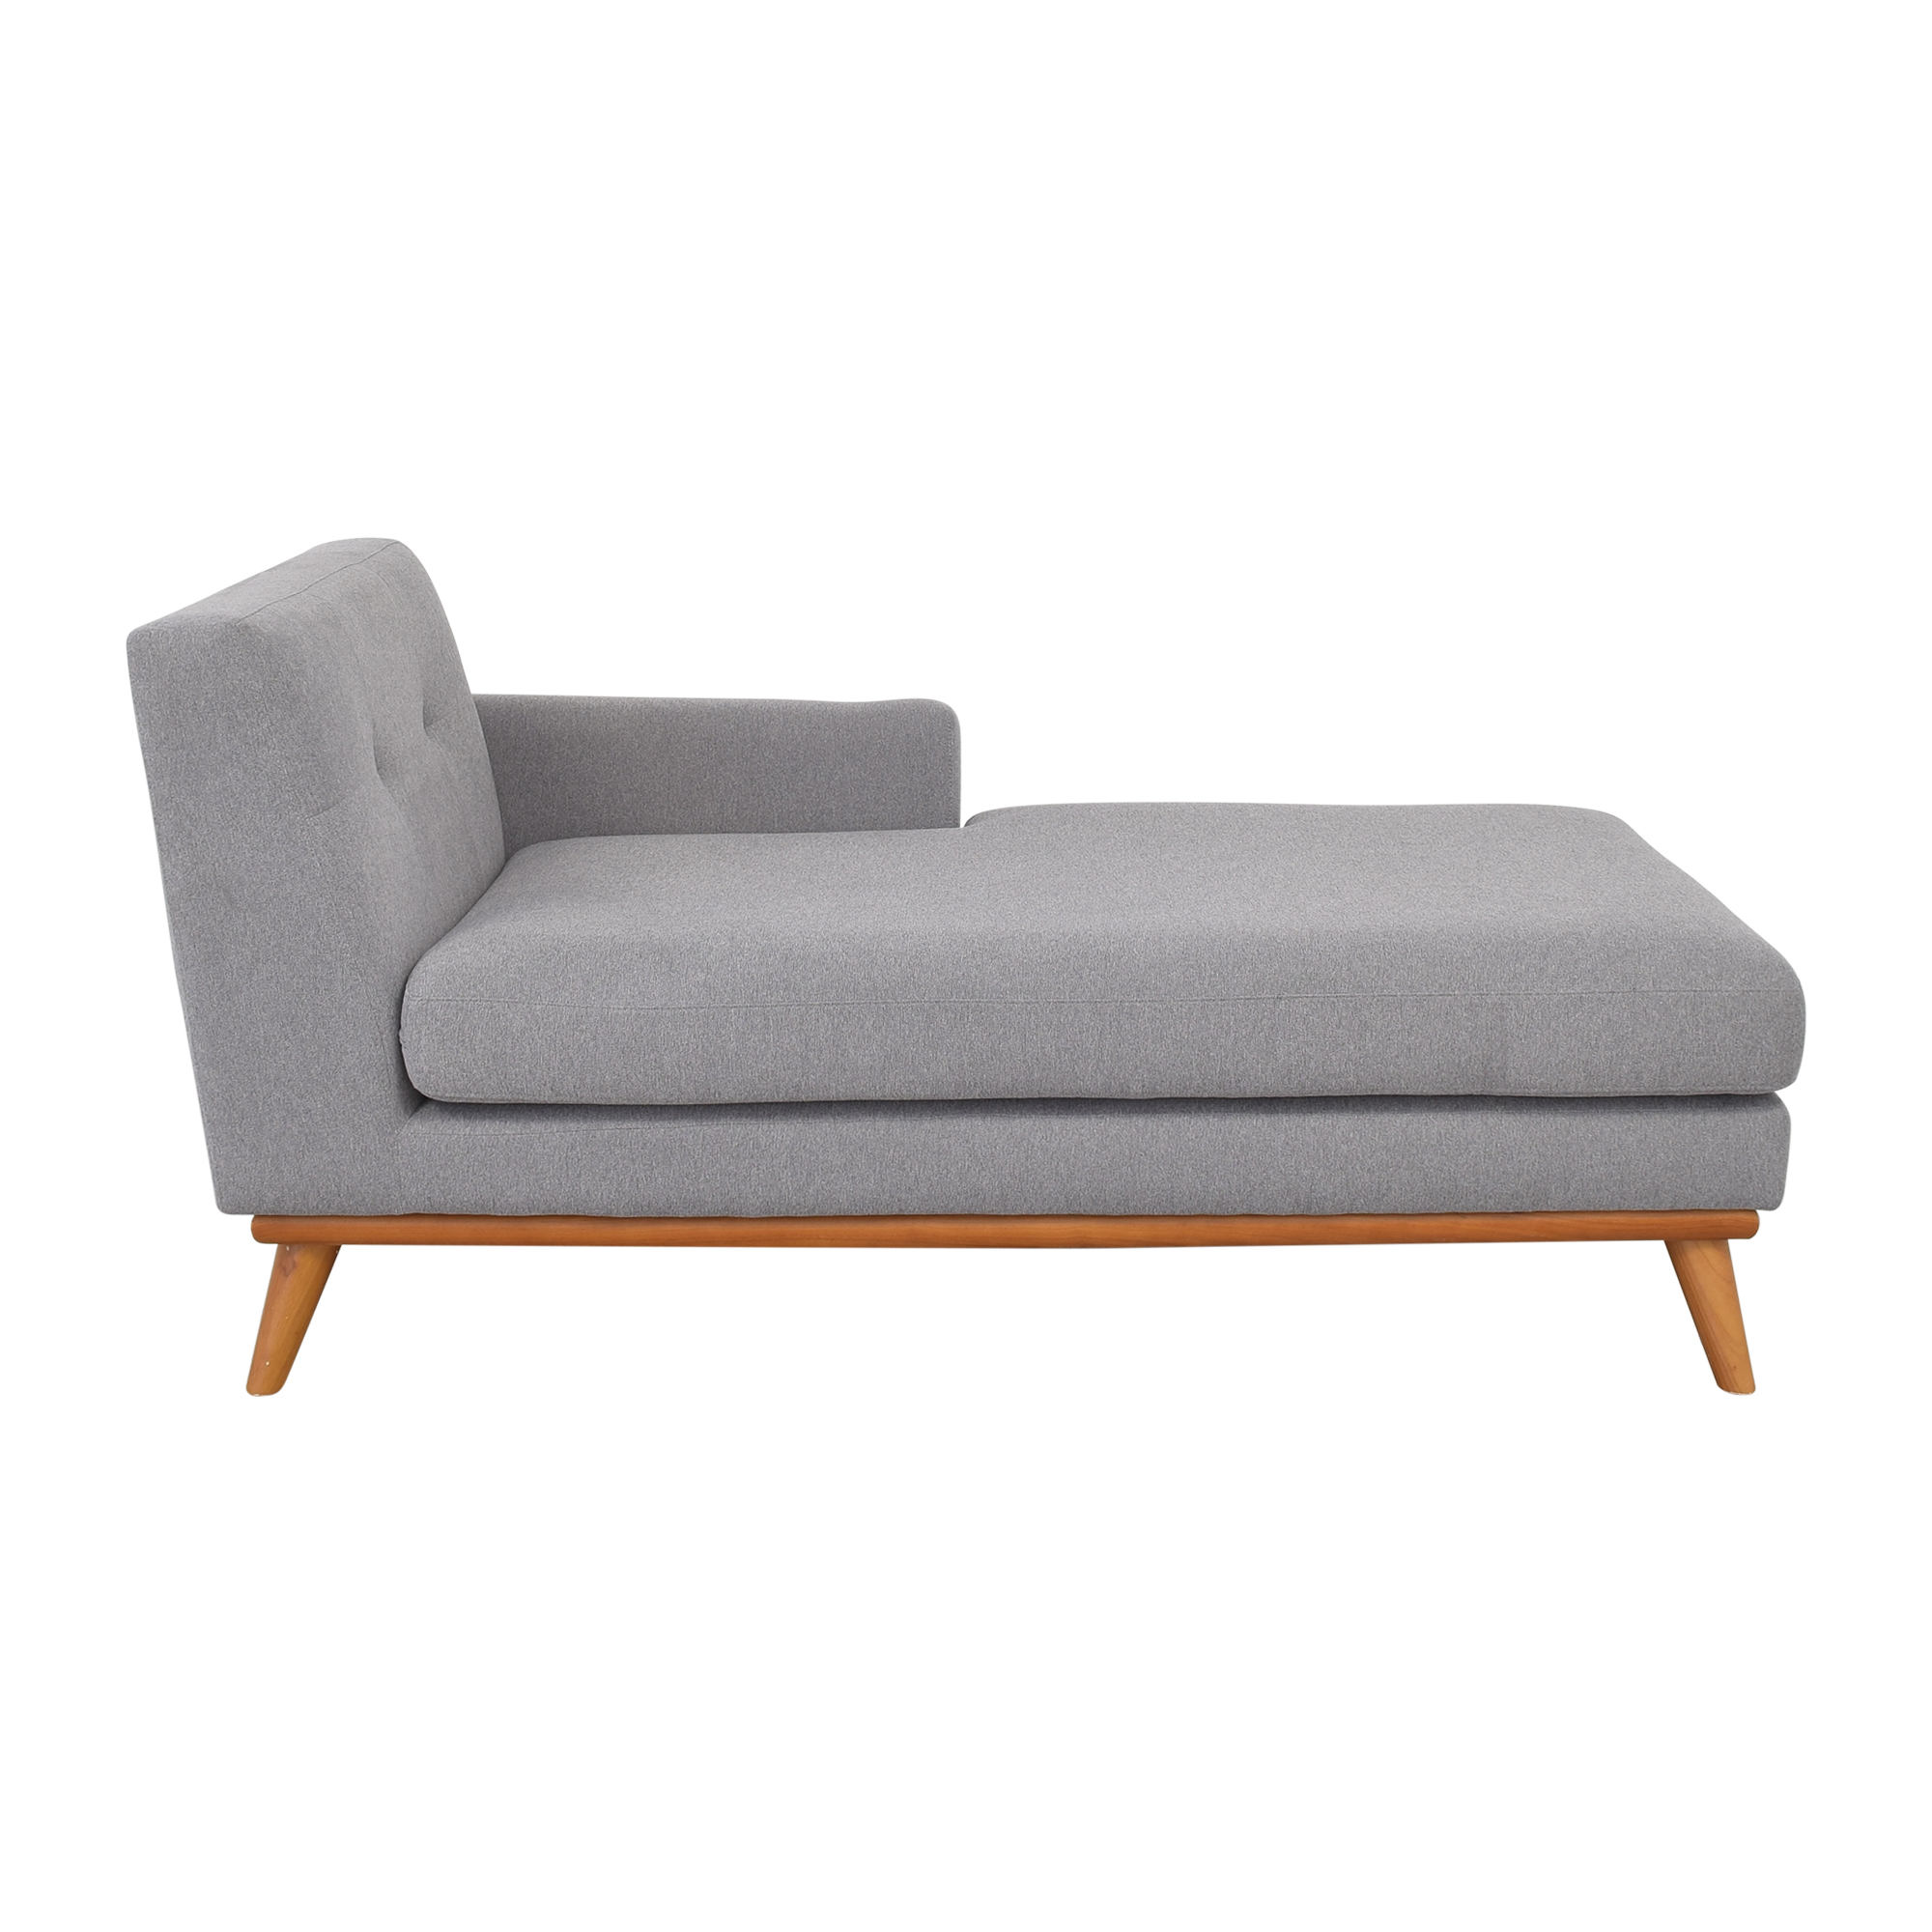 Modway Modway Engage Beige Right-Facing Chaise dimensions